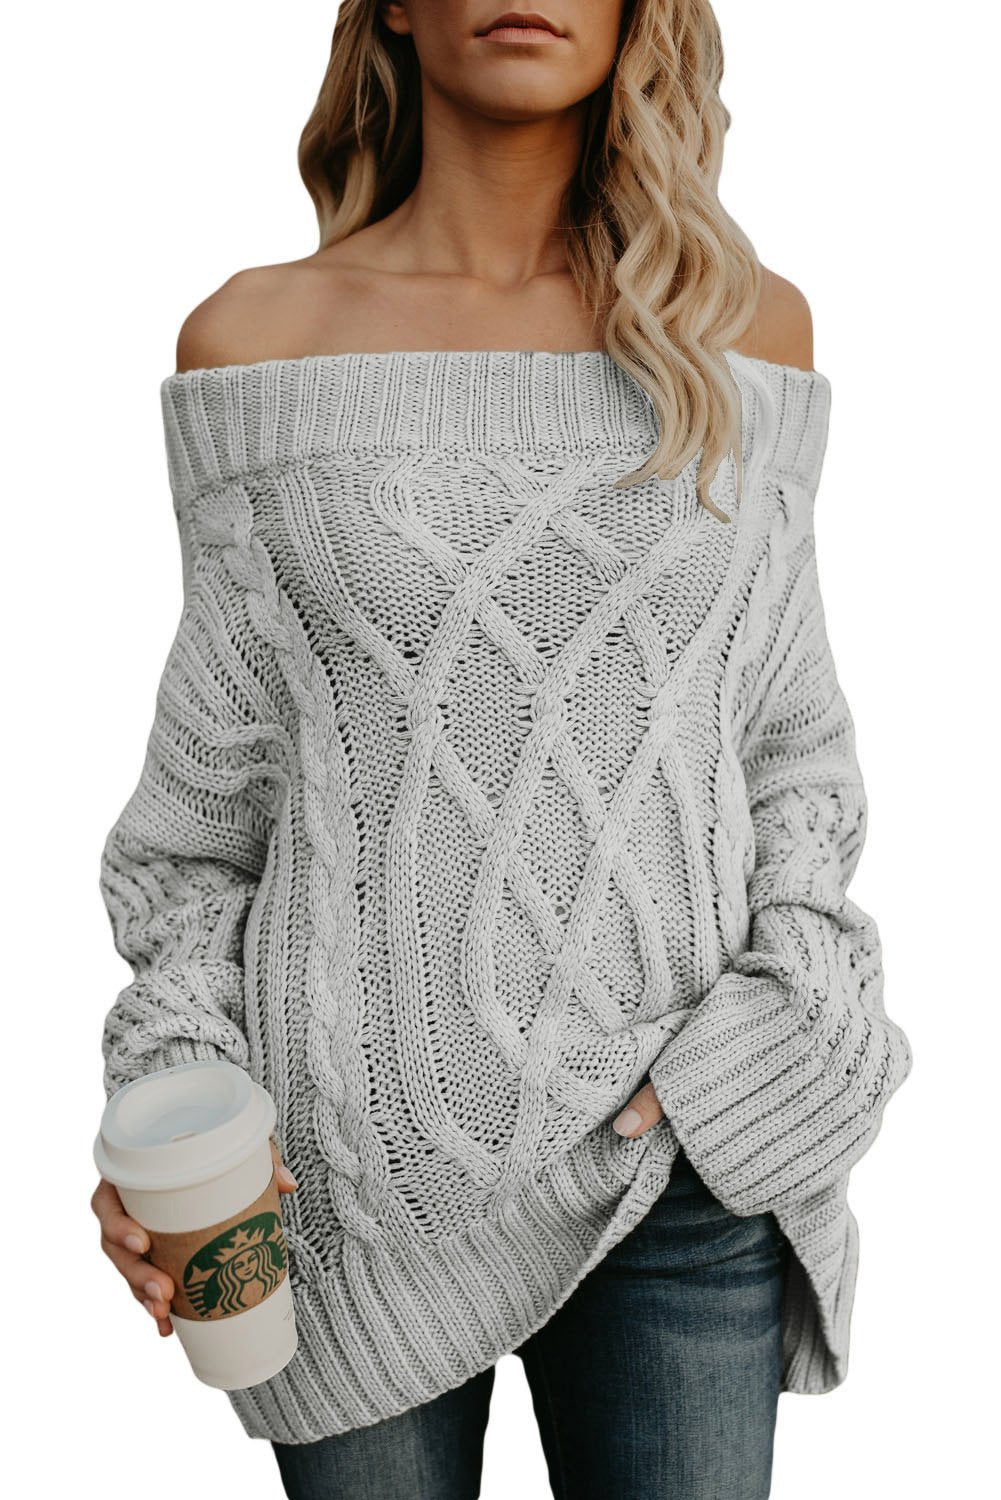 Fashion Gray Off The Shoulder Winter Sweater - Winter Haven Co